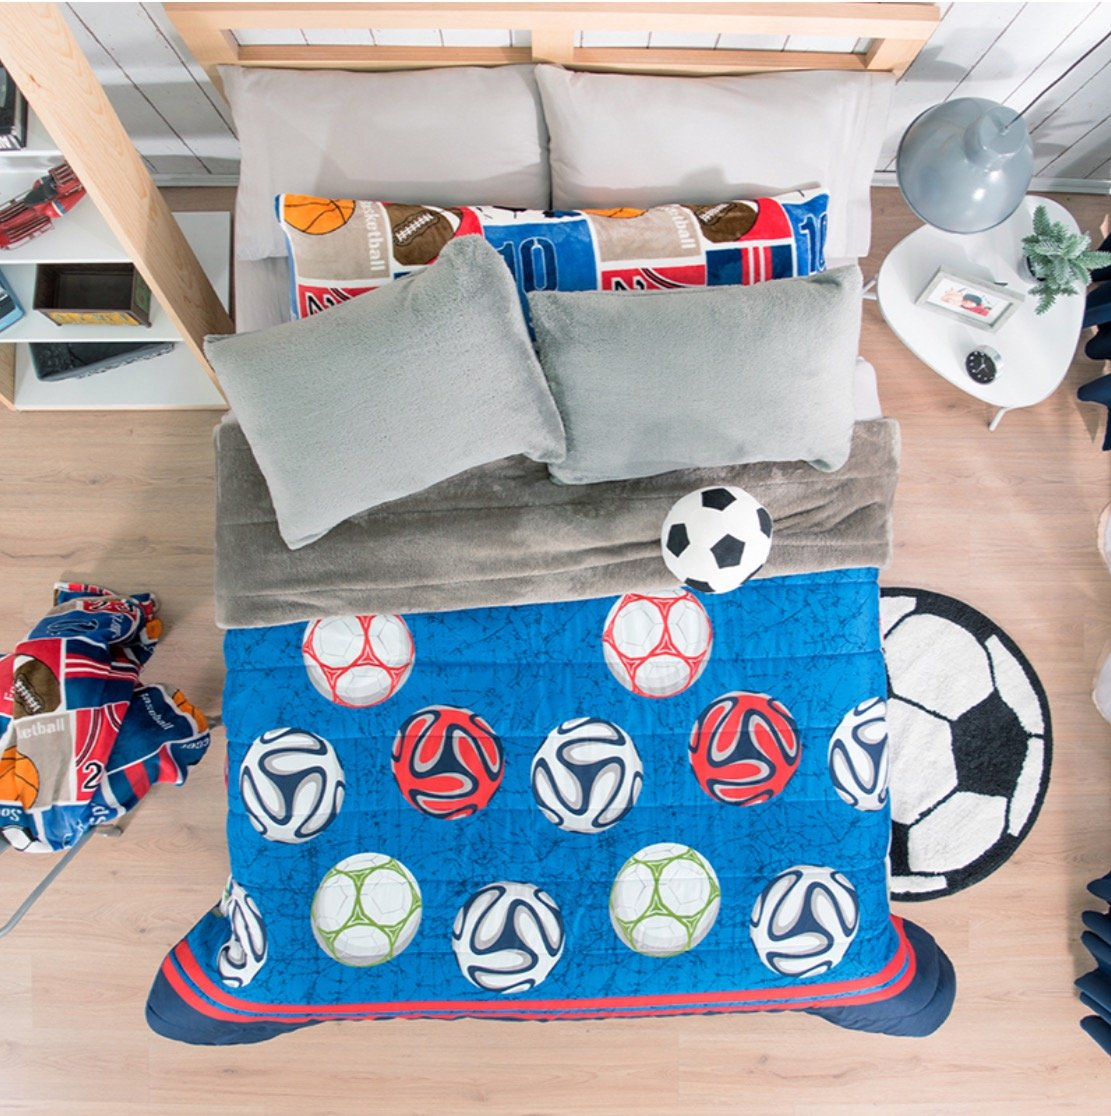 LIMITED EDITION SOCCER TEENS BOYS SOFTY COMFORTER WITH SHERPA VERY THICK AND WARM 3 PCS QUEEN SIZE